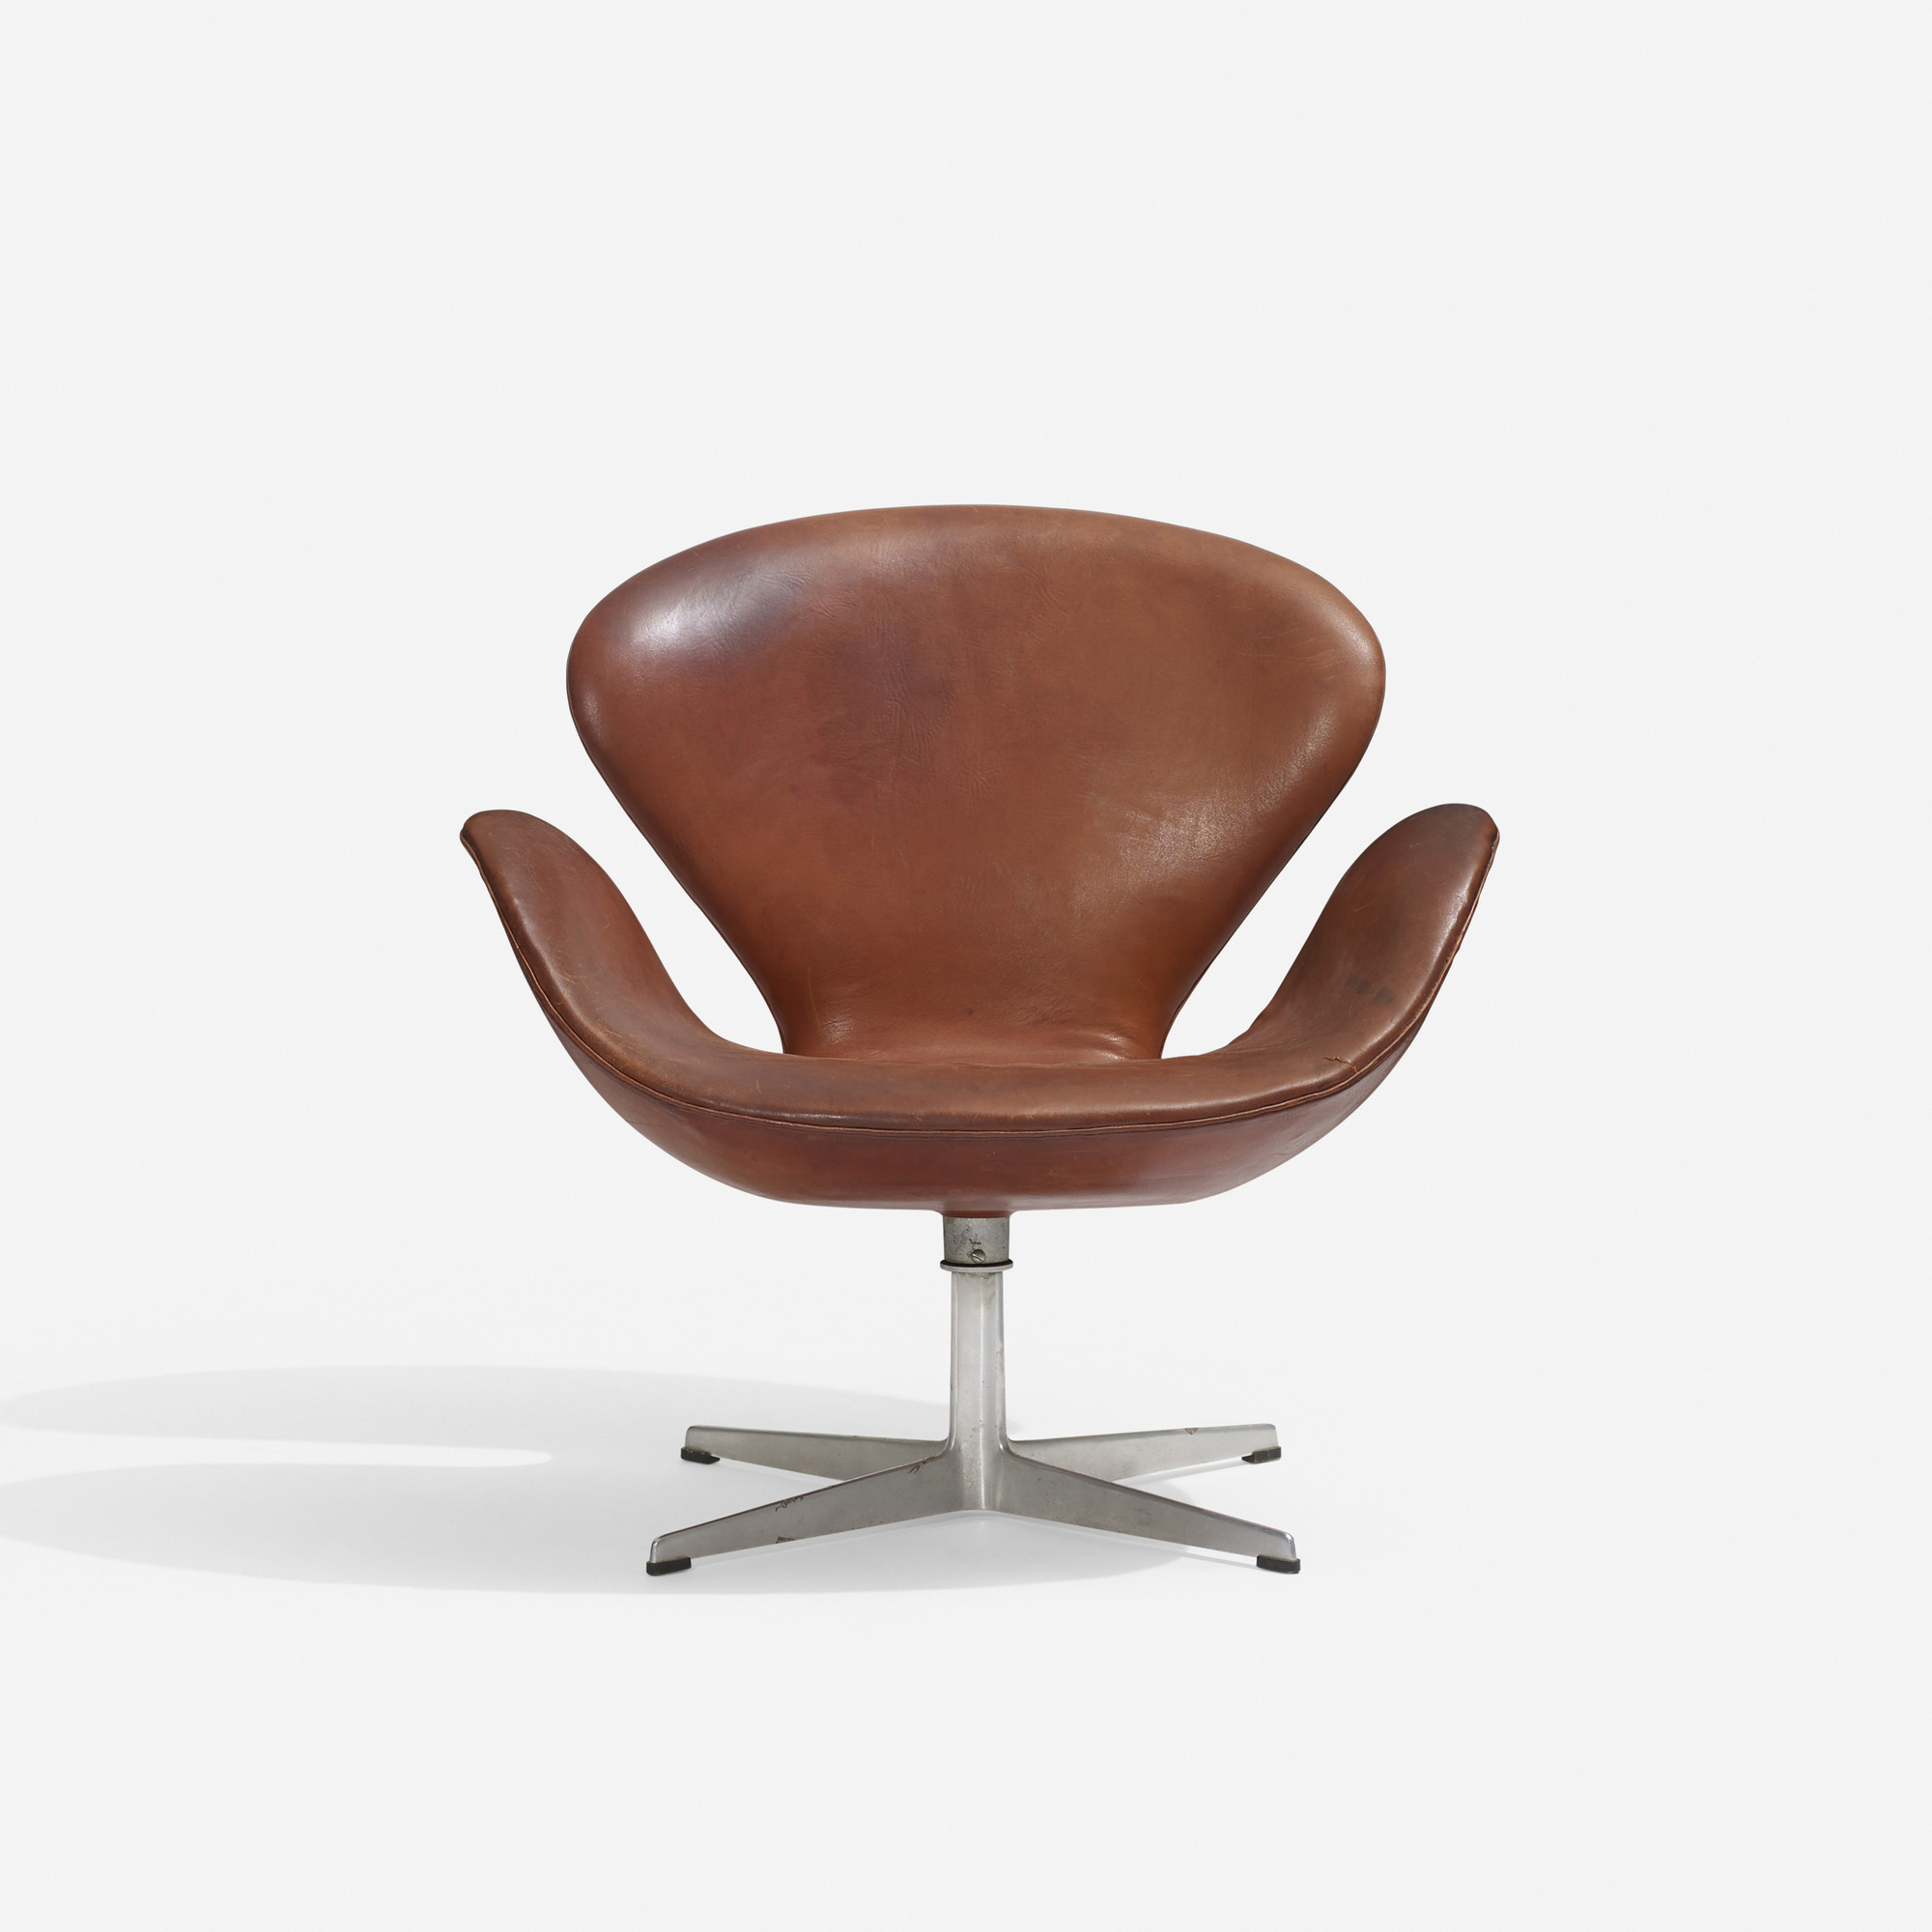 103 Arne Jacobsen Swan Chair Scandinavian Design 5 May 2016 Auctions Wright Auctions Of Art And Design